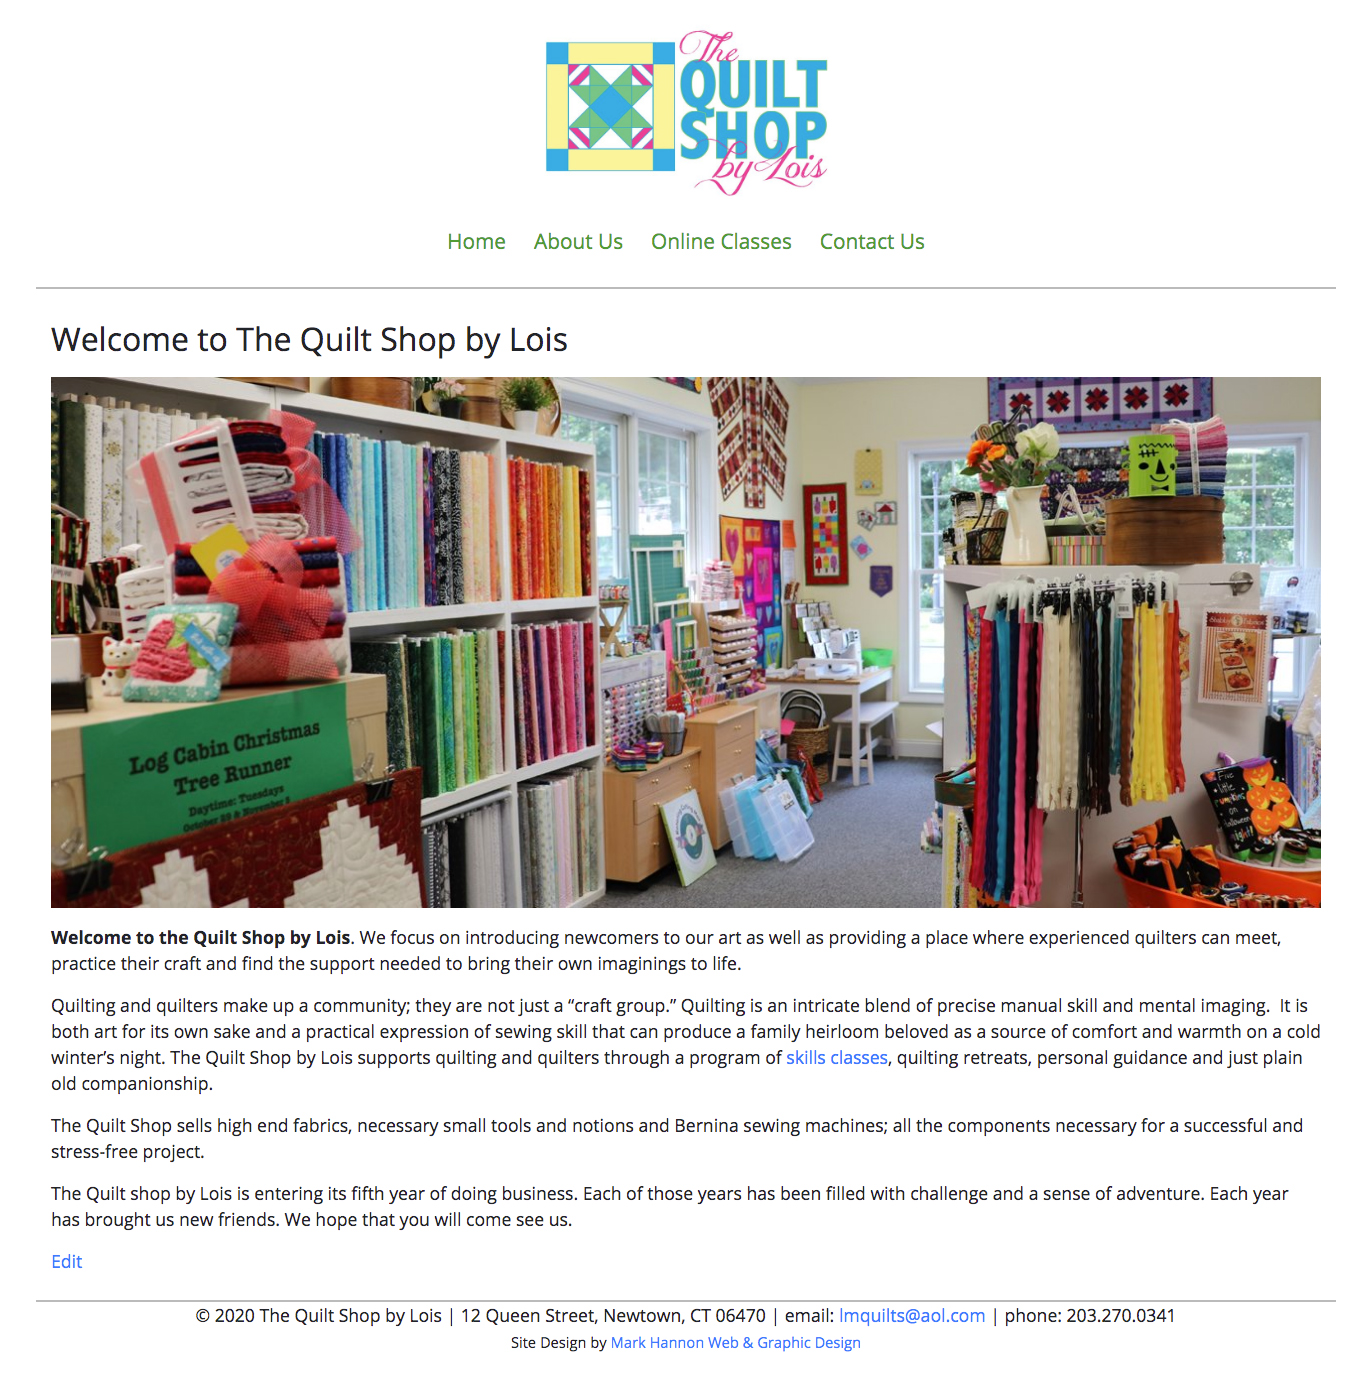 The Quilt Shop by Lois